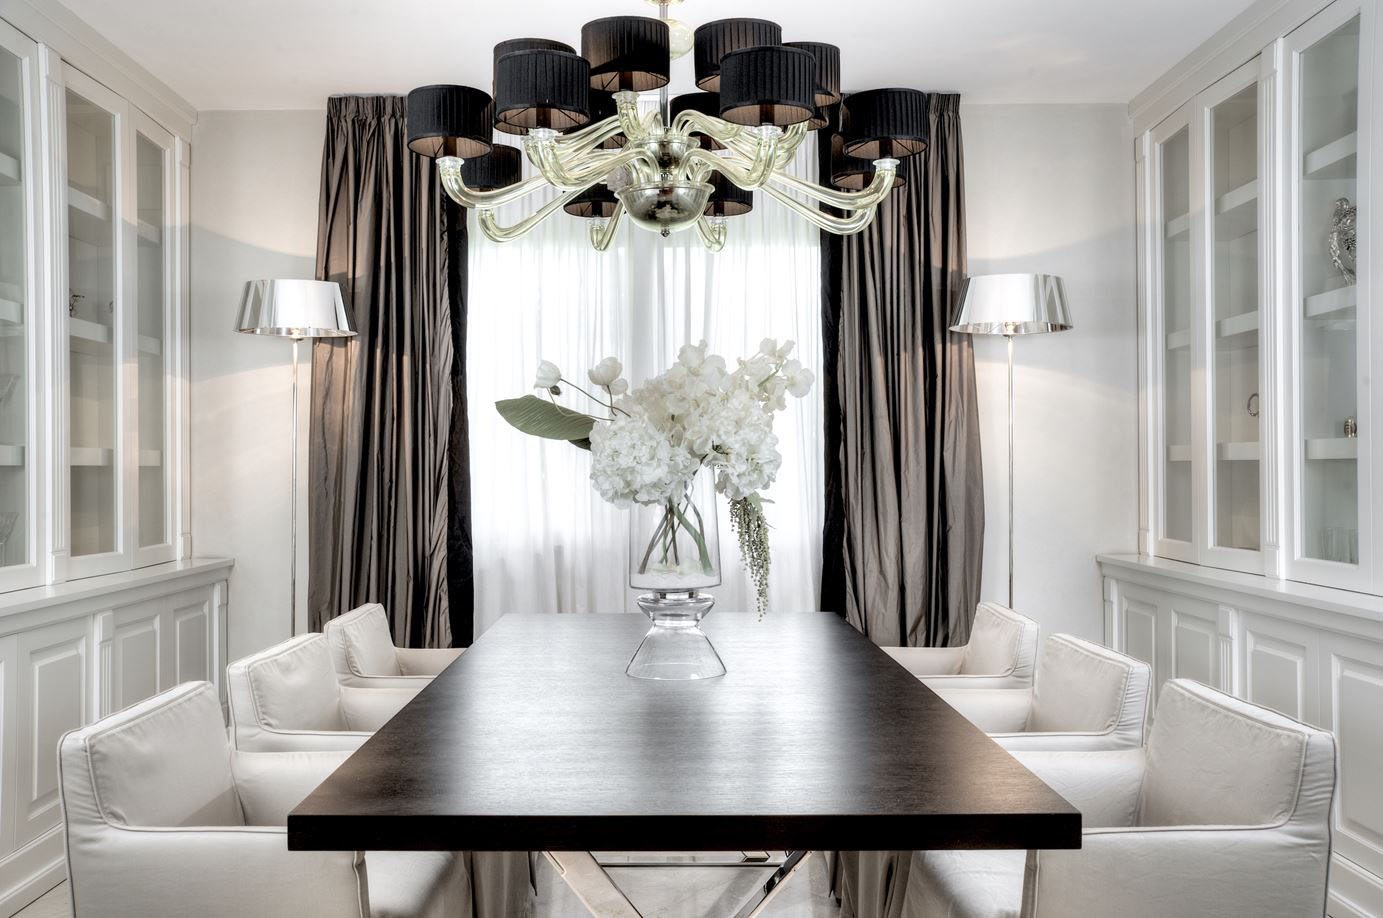 Luxury Home Interior With Timeless Contemporary Elegance